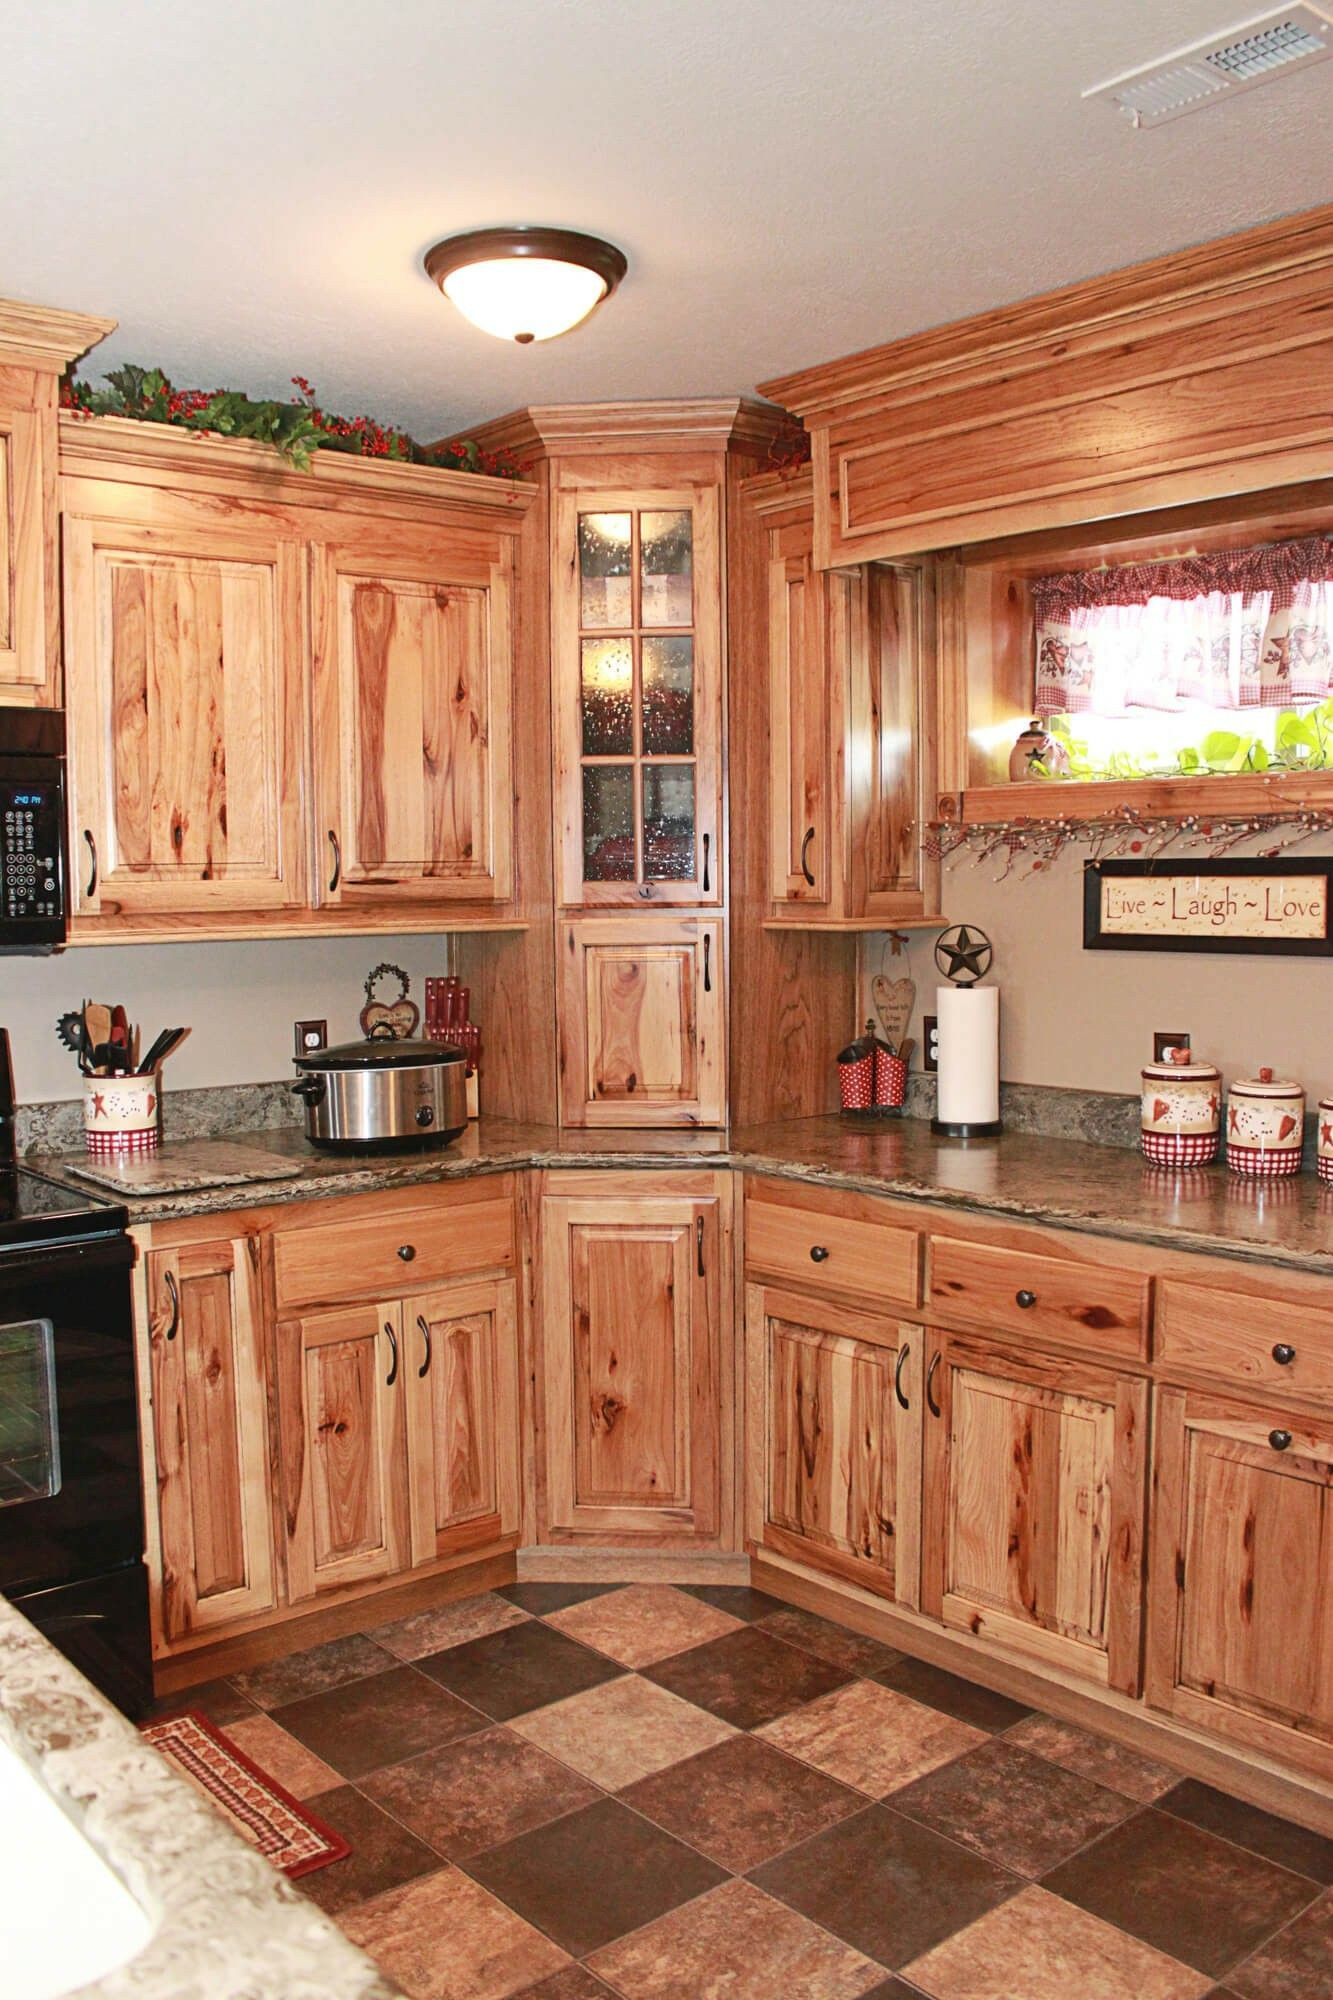 15 Best Rustic Kitchen Cabinet Ideas And Design Gallery Looking For More  Rustic Kitchen Cabinet Photos Gallery Visit The Site Hickory Wood Cabinets62